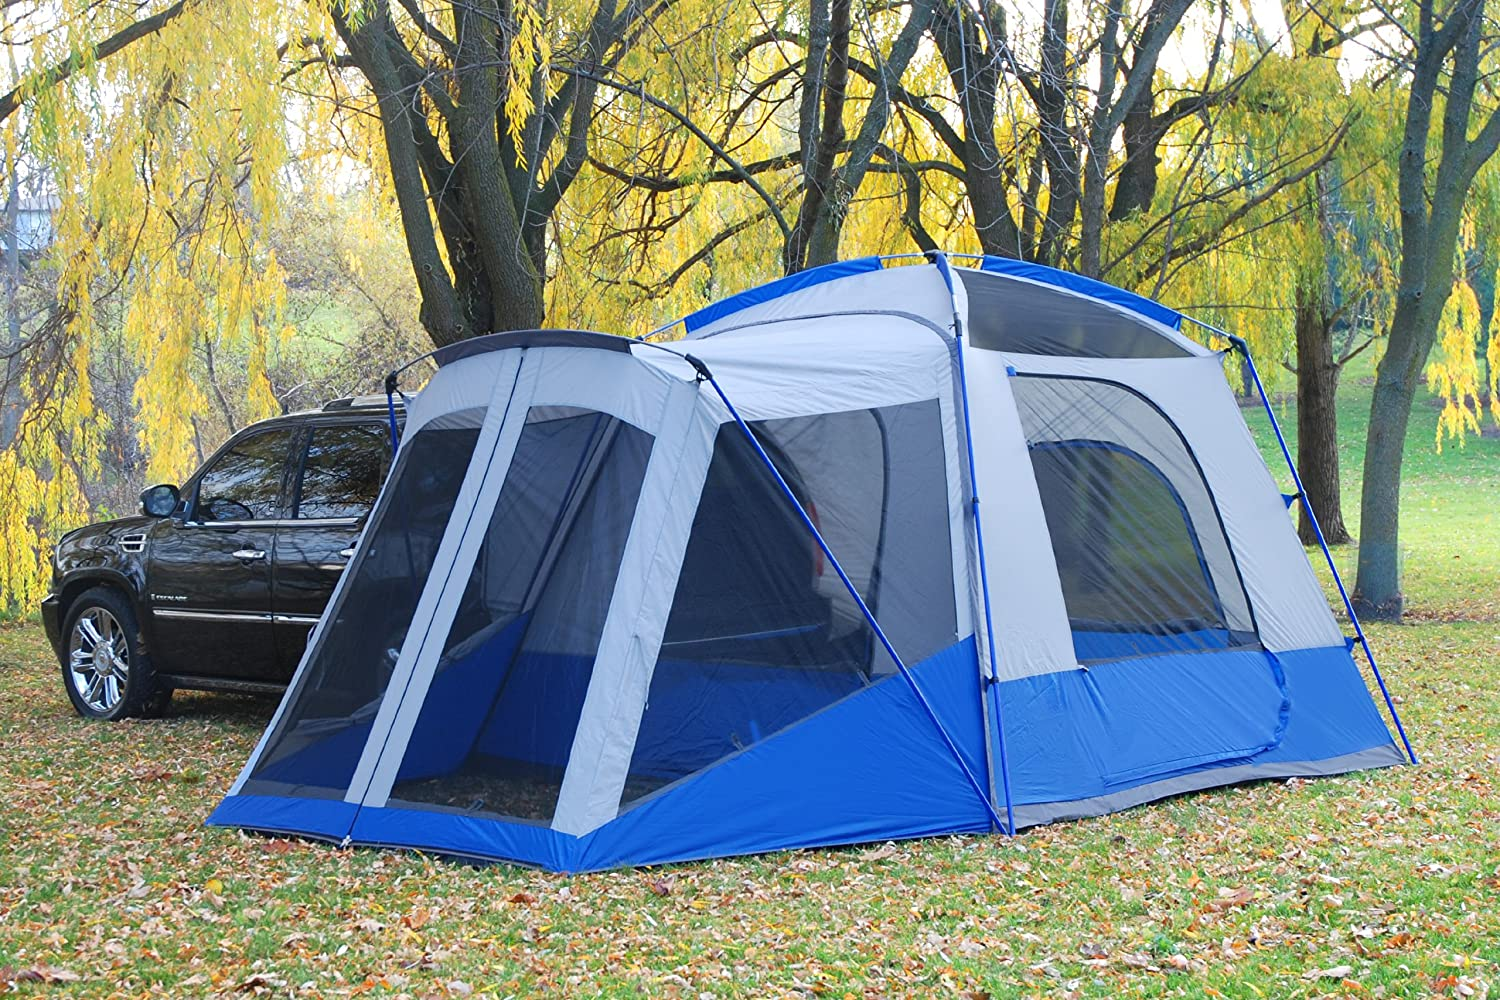 Napier Sportz SUV tent with screen room & LUXURY CAMPING TENTS | Reviews Comparisons Ratings